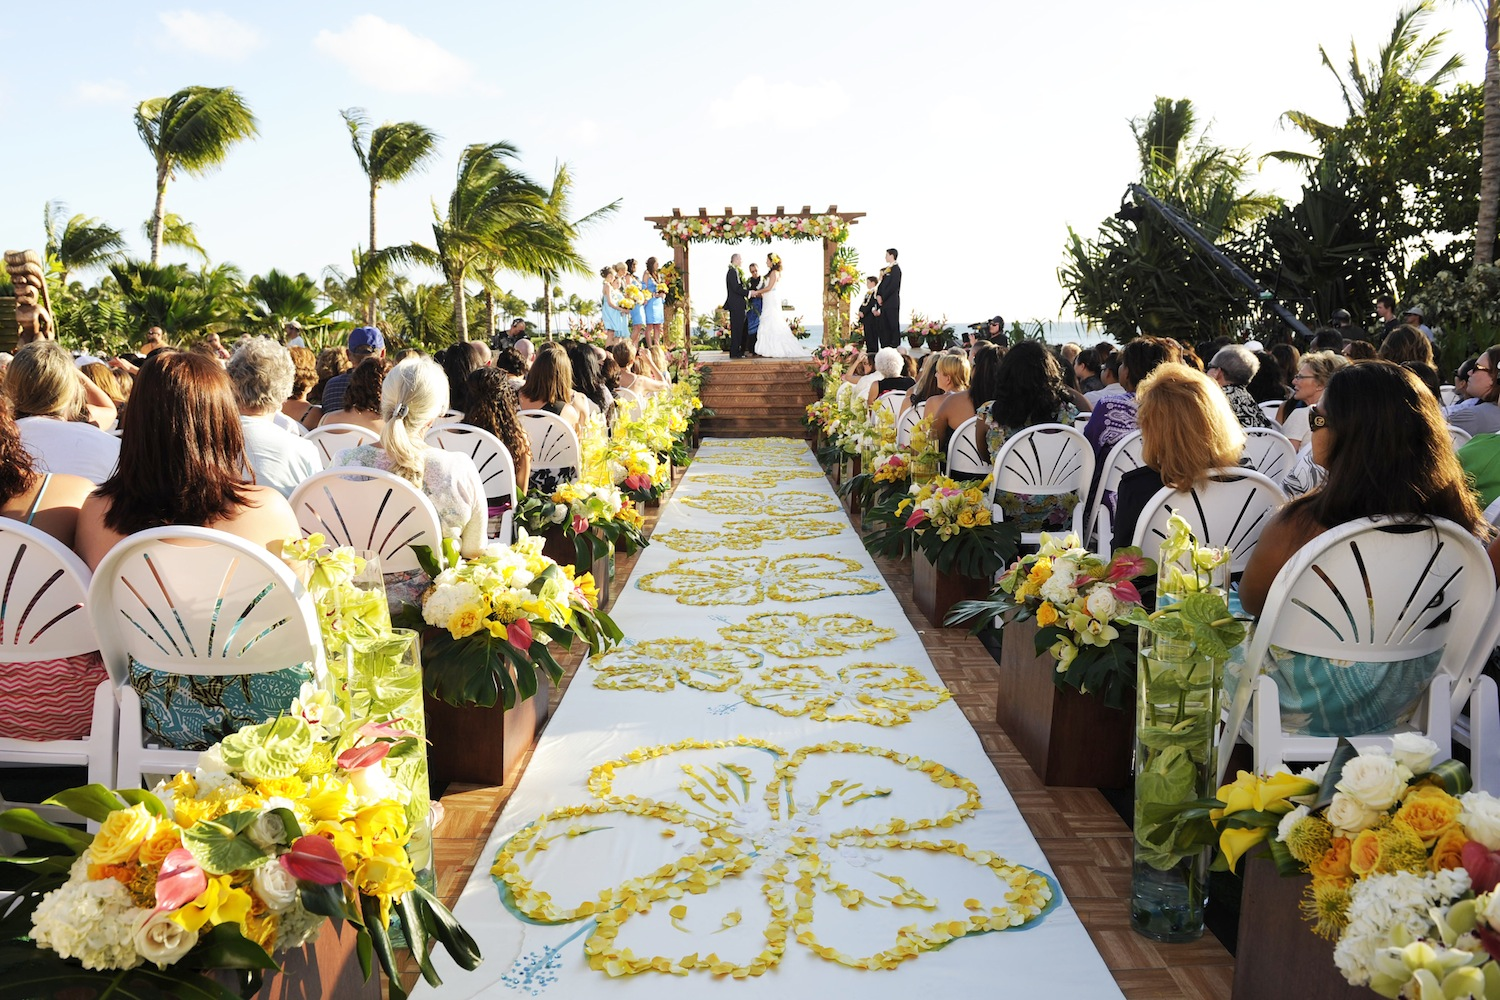 custom aisle runner designs for your wedding ceremony inside weddings. Black Bedroom Furniture Sets. Home Design Ideas